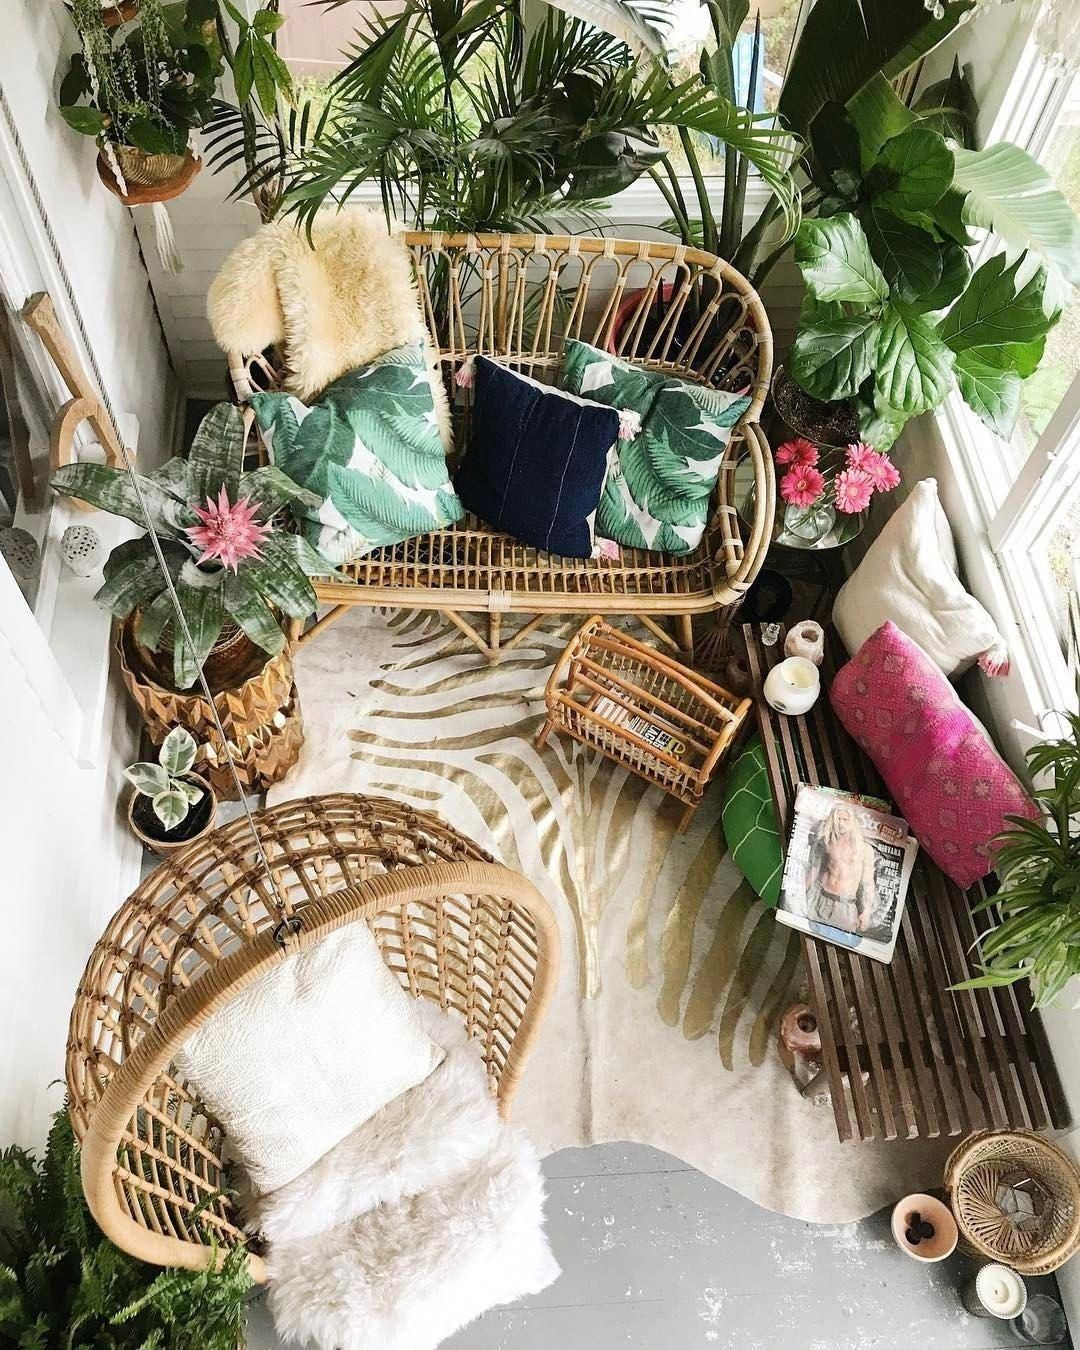 The Best Decorated Small Outdoor Balconies On Pinterest Boho Apartment Patio Inspiration Wicker Outdoor F In 2020 Balcony Decor Small Patio Decor Patio Inspiration